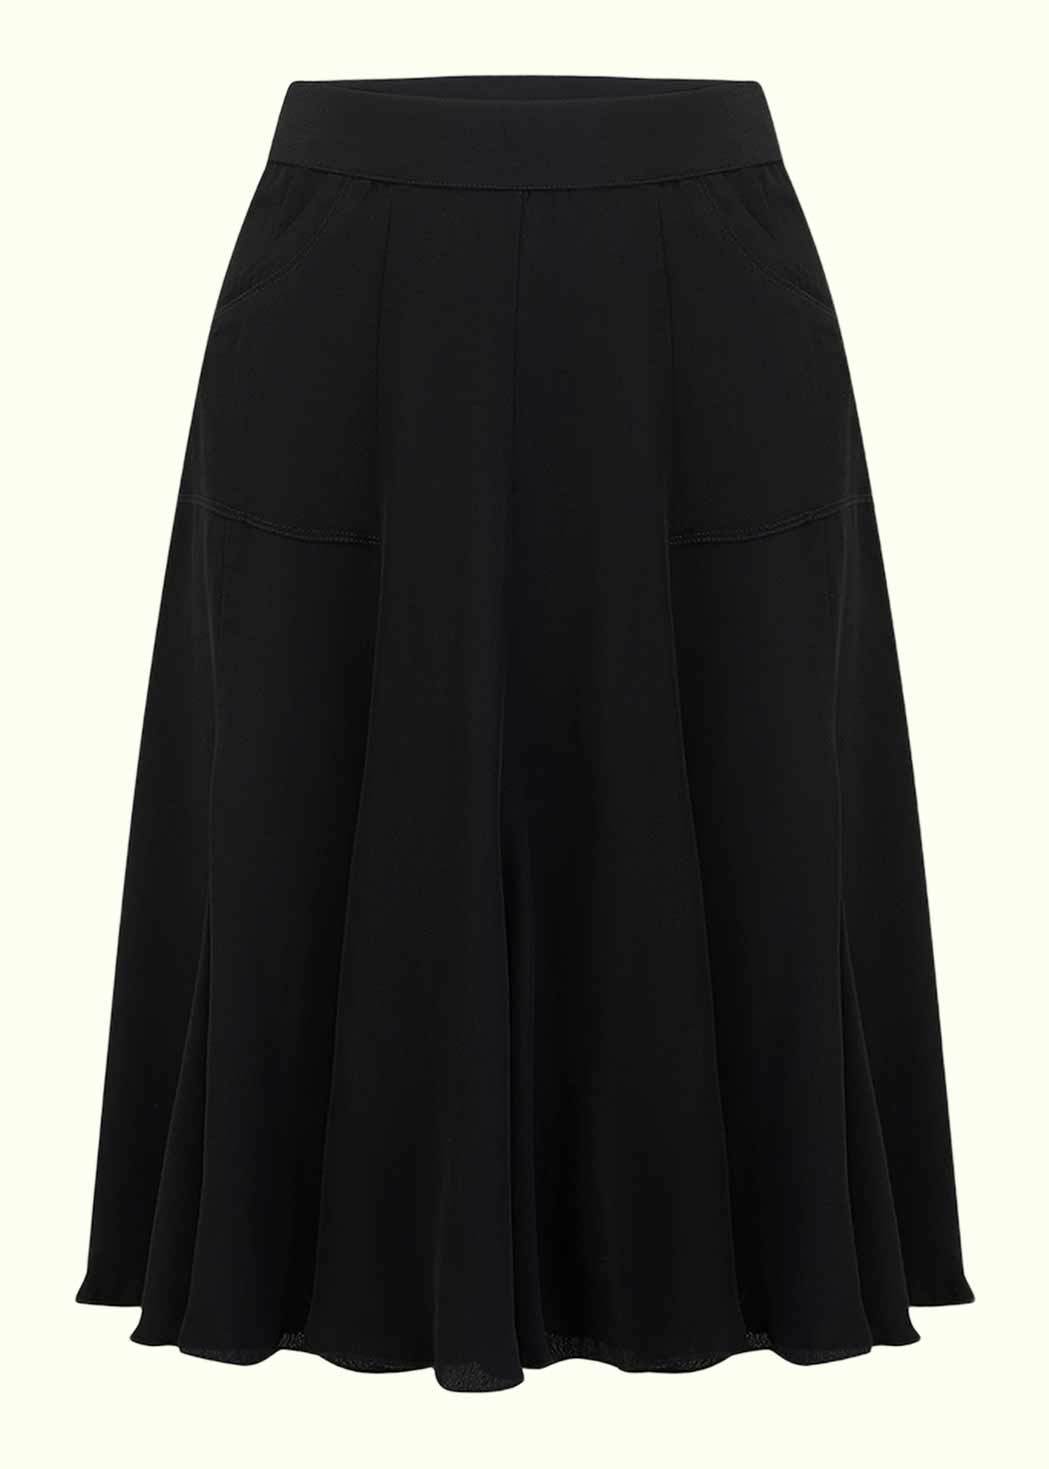 Classic 1940s A-line skirt in black from Seamstress OF Bloomsbury